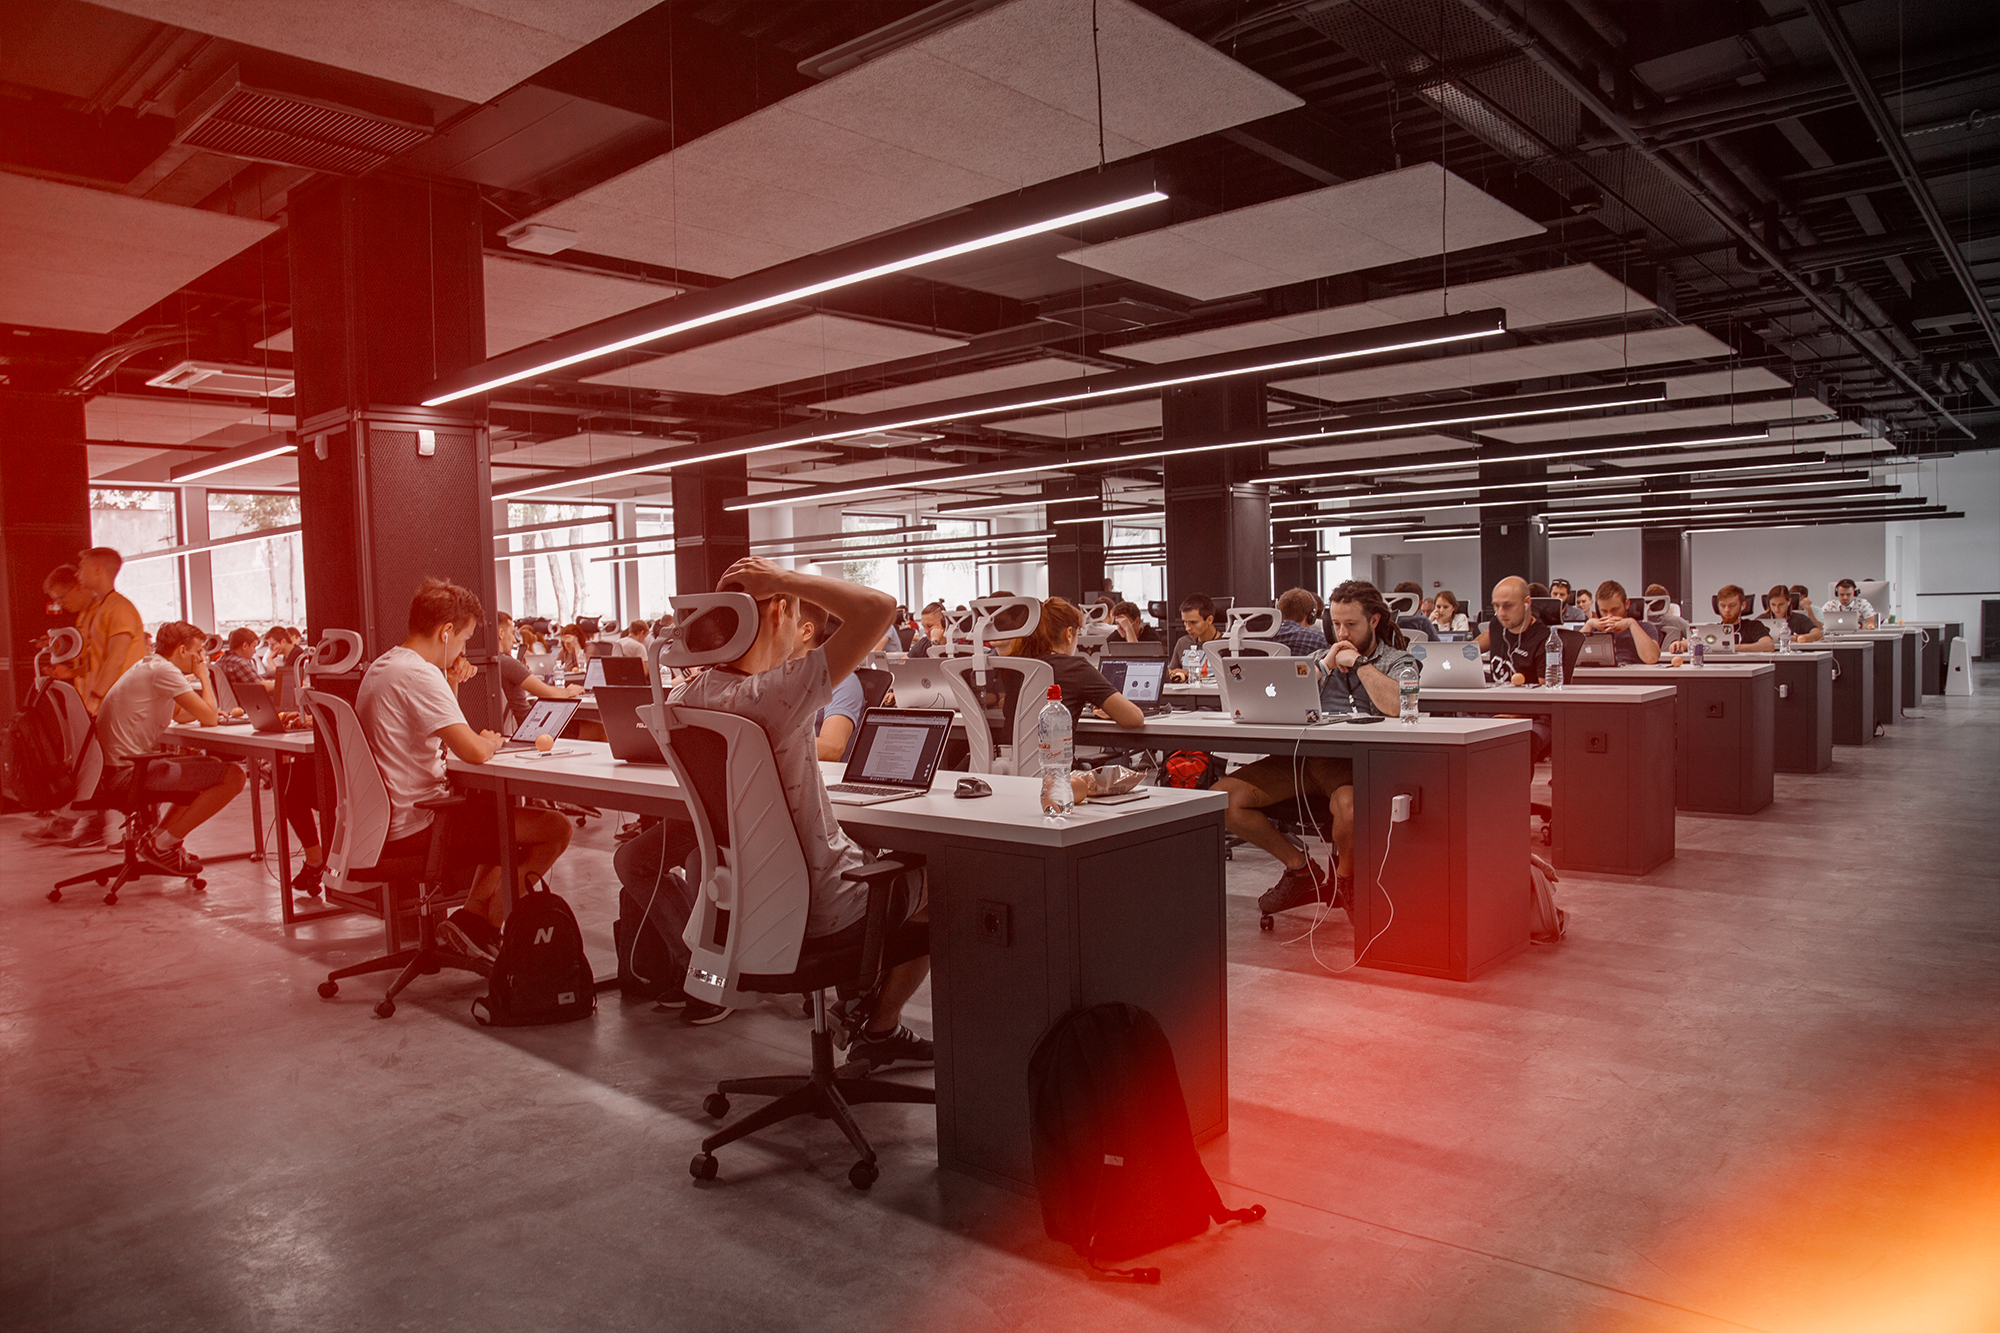 Sentient at work developing innovative SaaS product and solutions